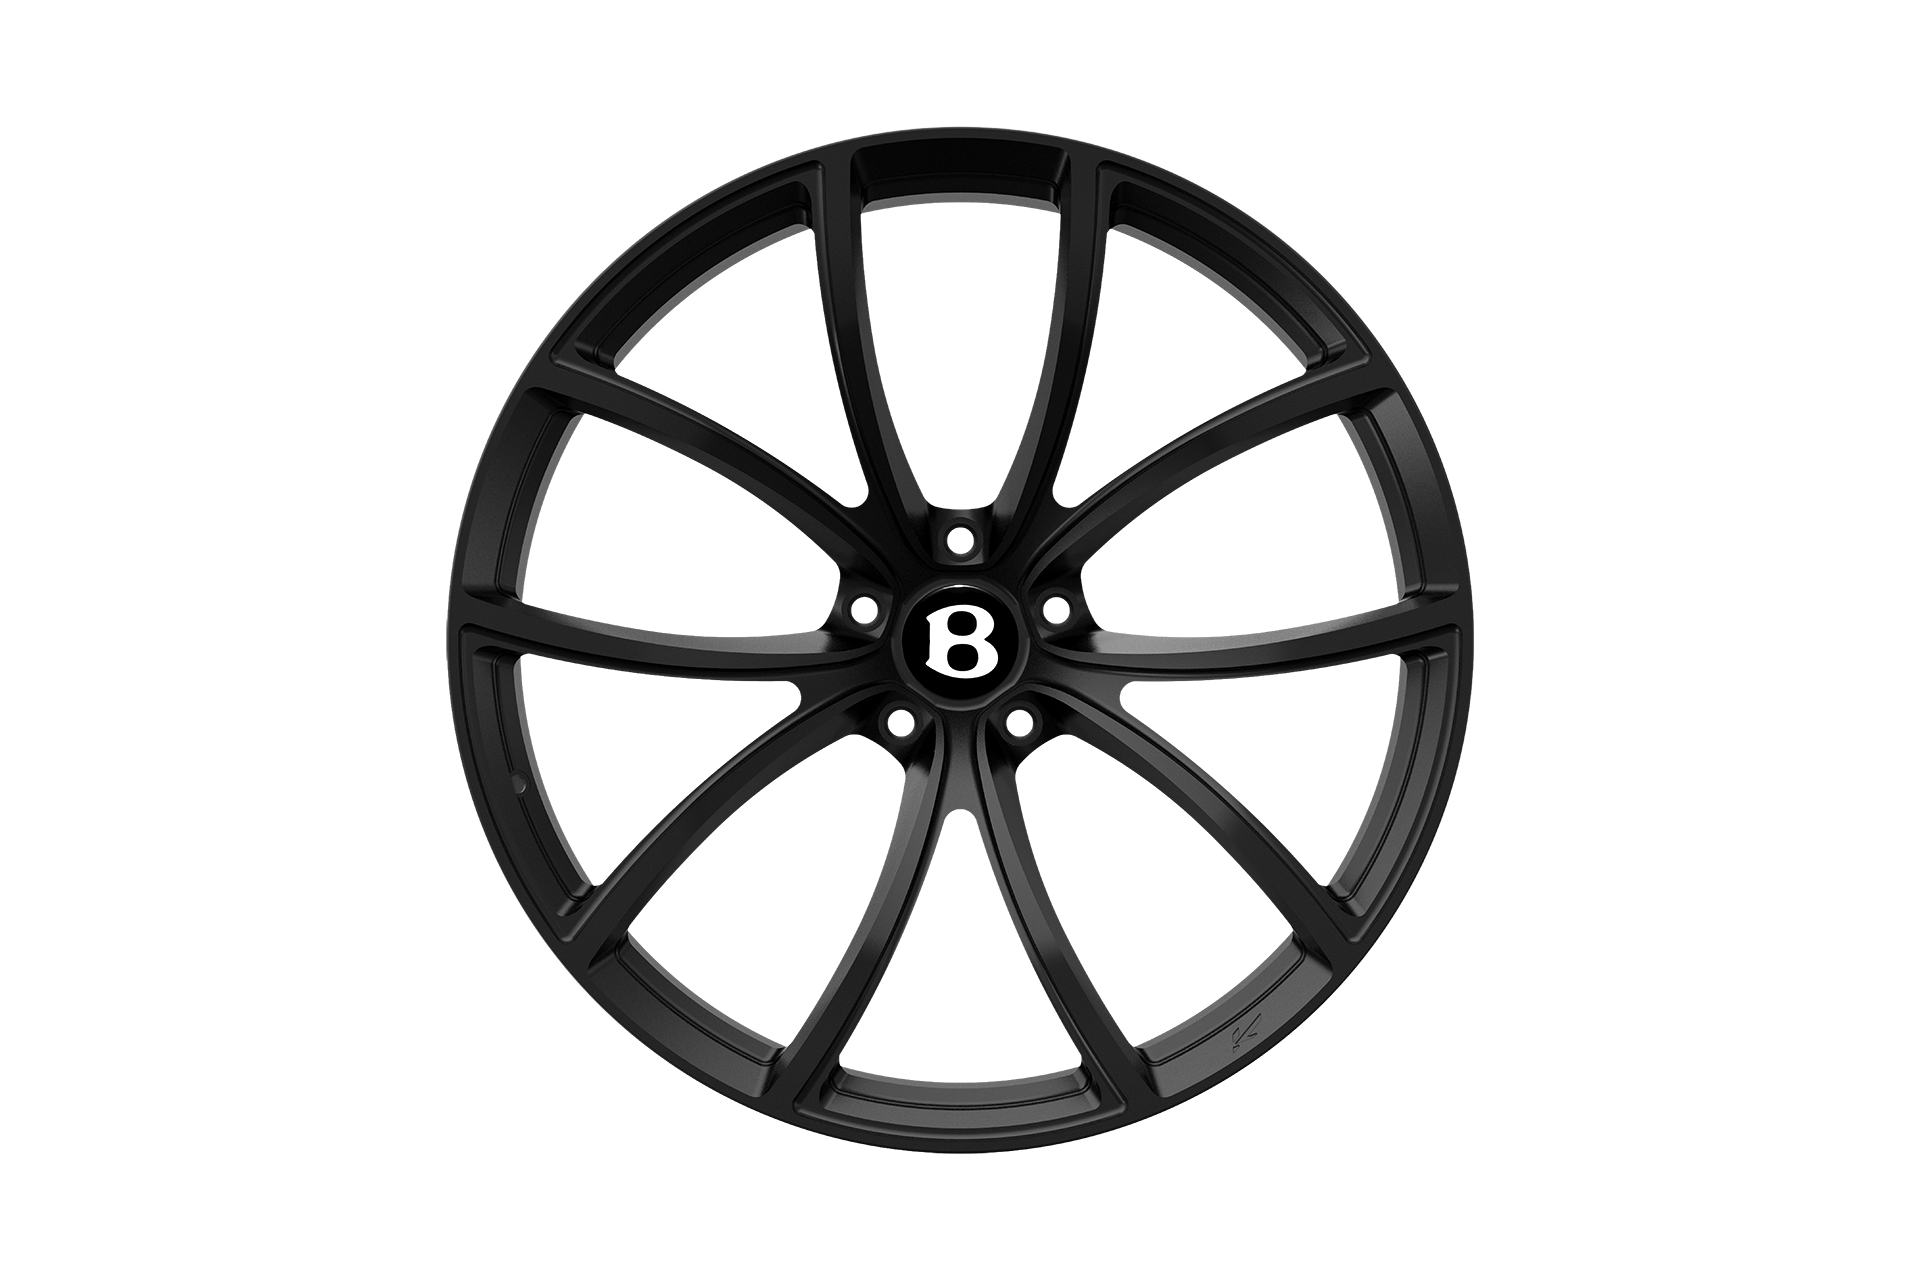 Bentley Bentayga (2016-2020) Forged Light Alloy Wheels by Kahn - Image 3757